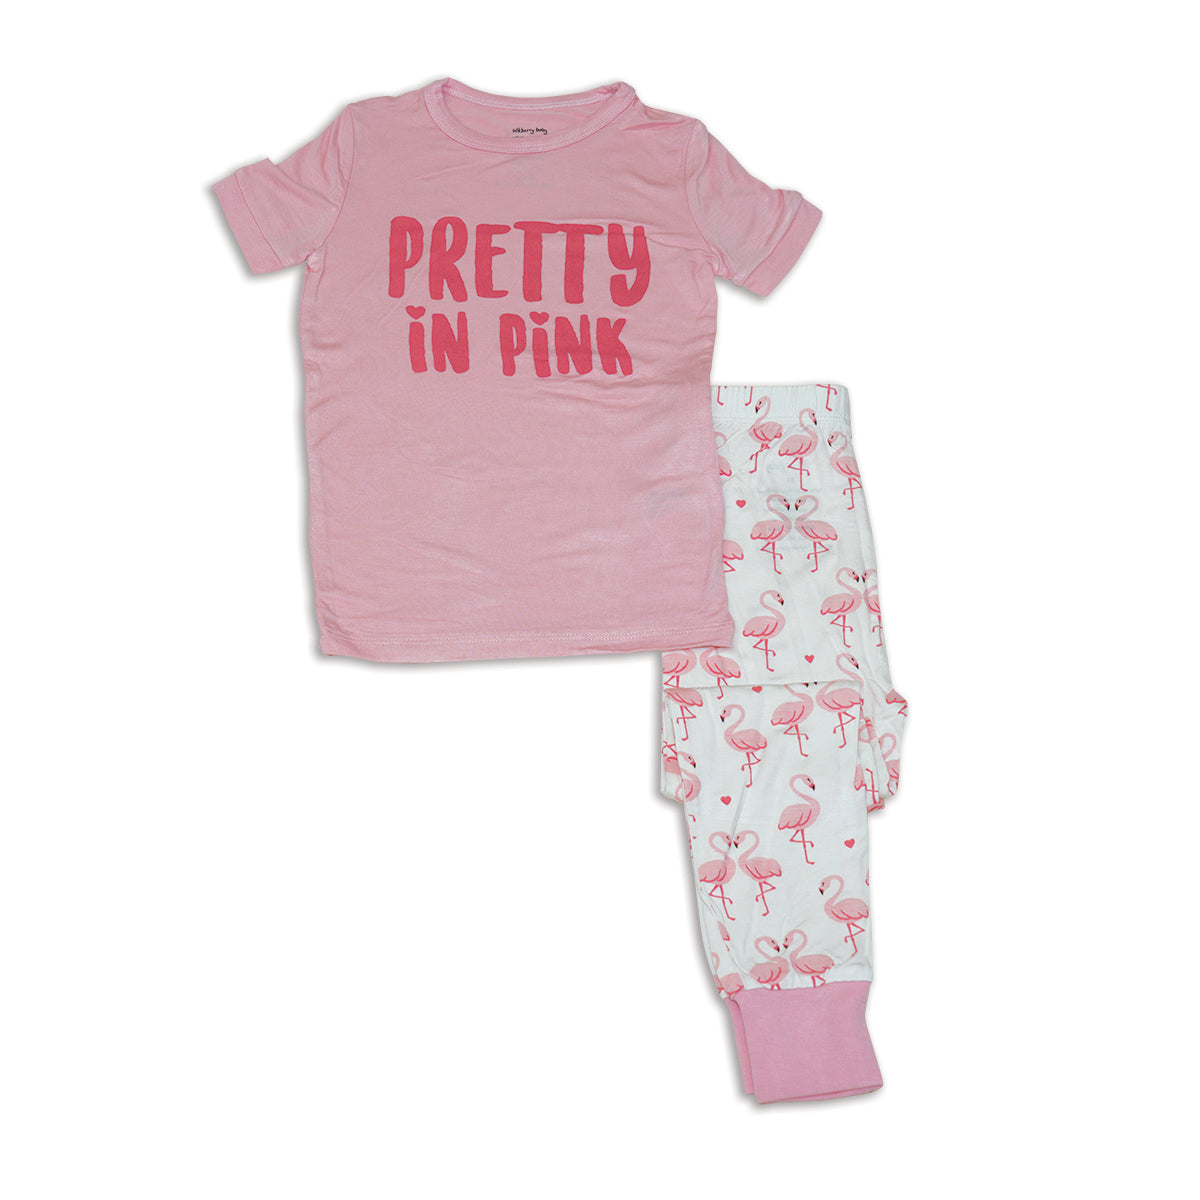 Bamboo Short Sleeve Pajama Set (Jellyfish/Flamingo Love)